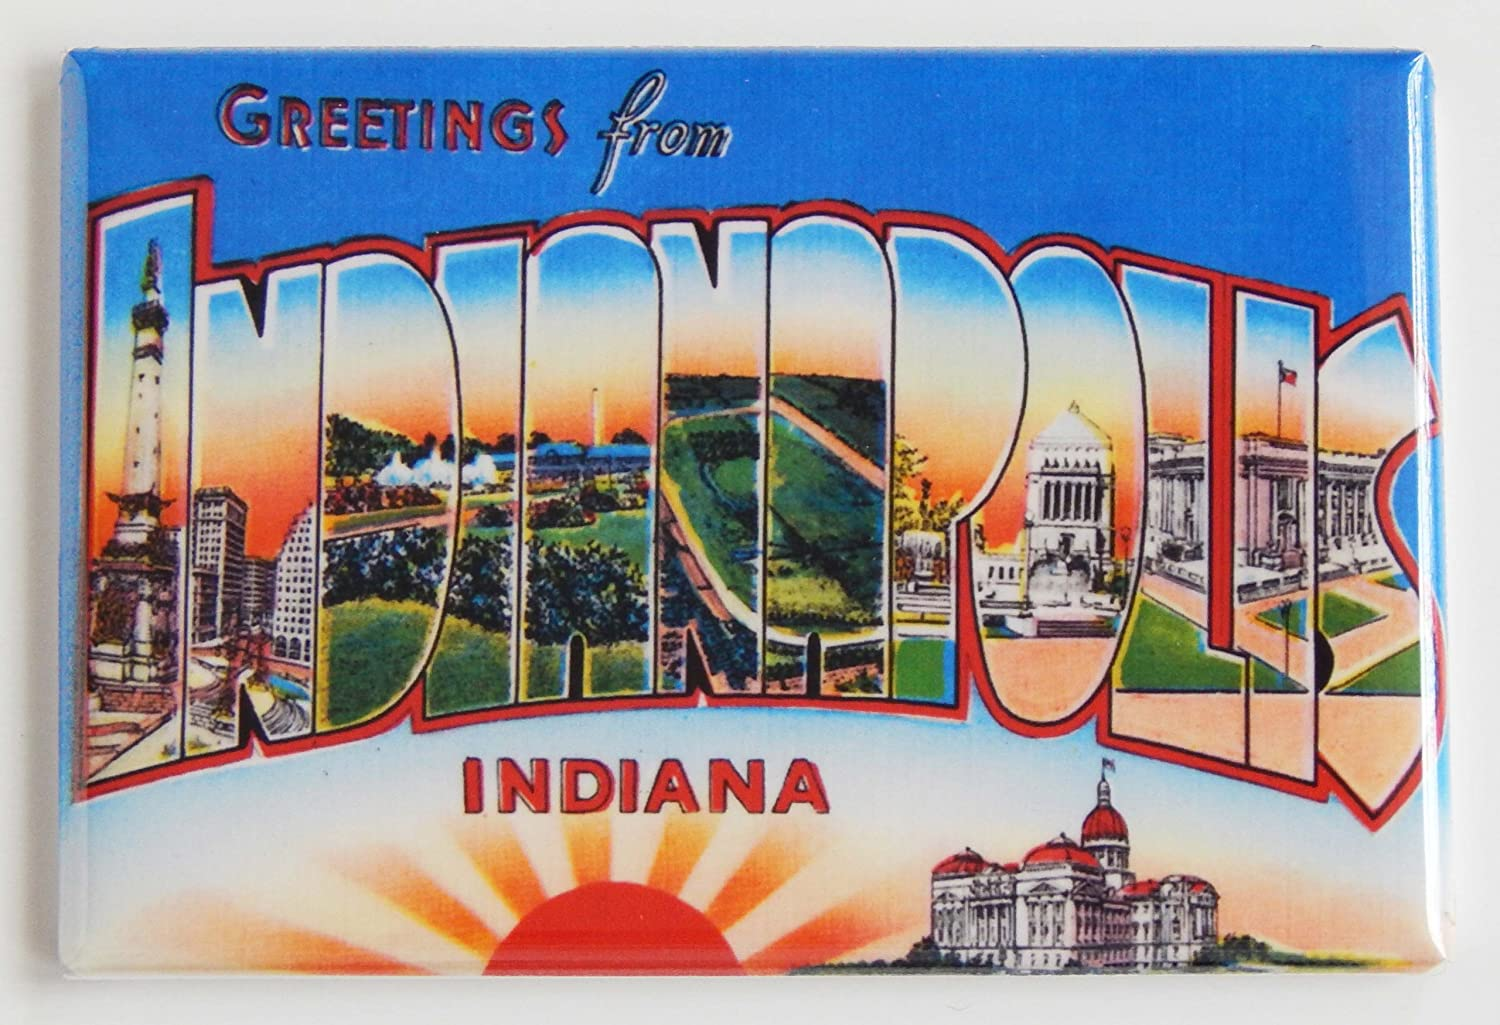 Greetings From Indianapolis Indiana Fridge Magnet (2 x 3 inches)